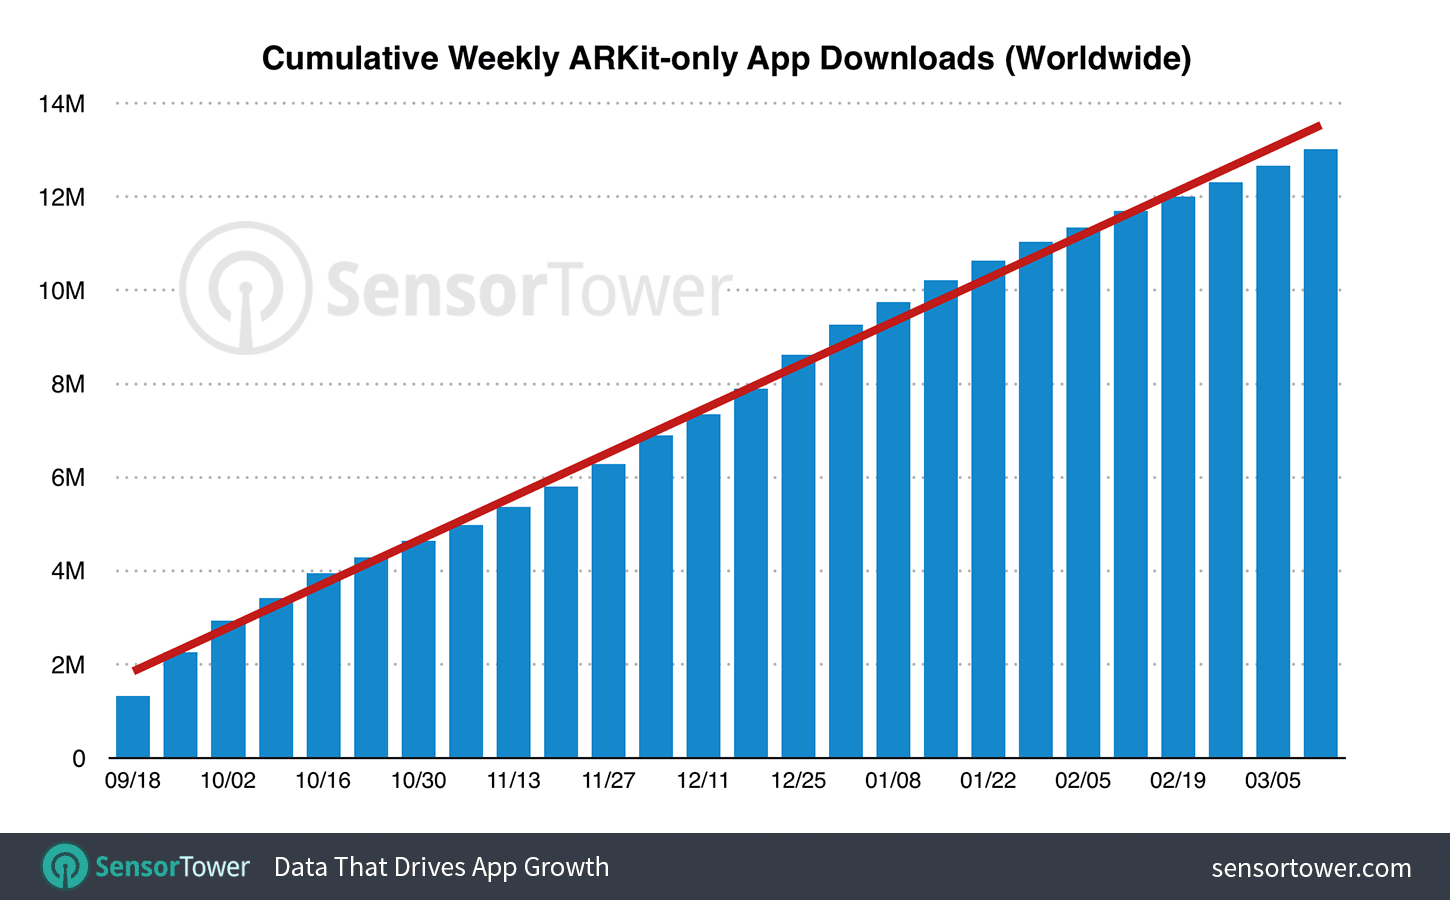 Chart showing downloads of ARKit-only apps worldwide since September 2017